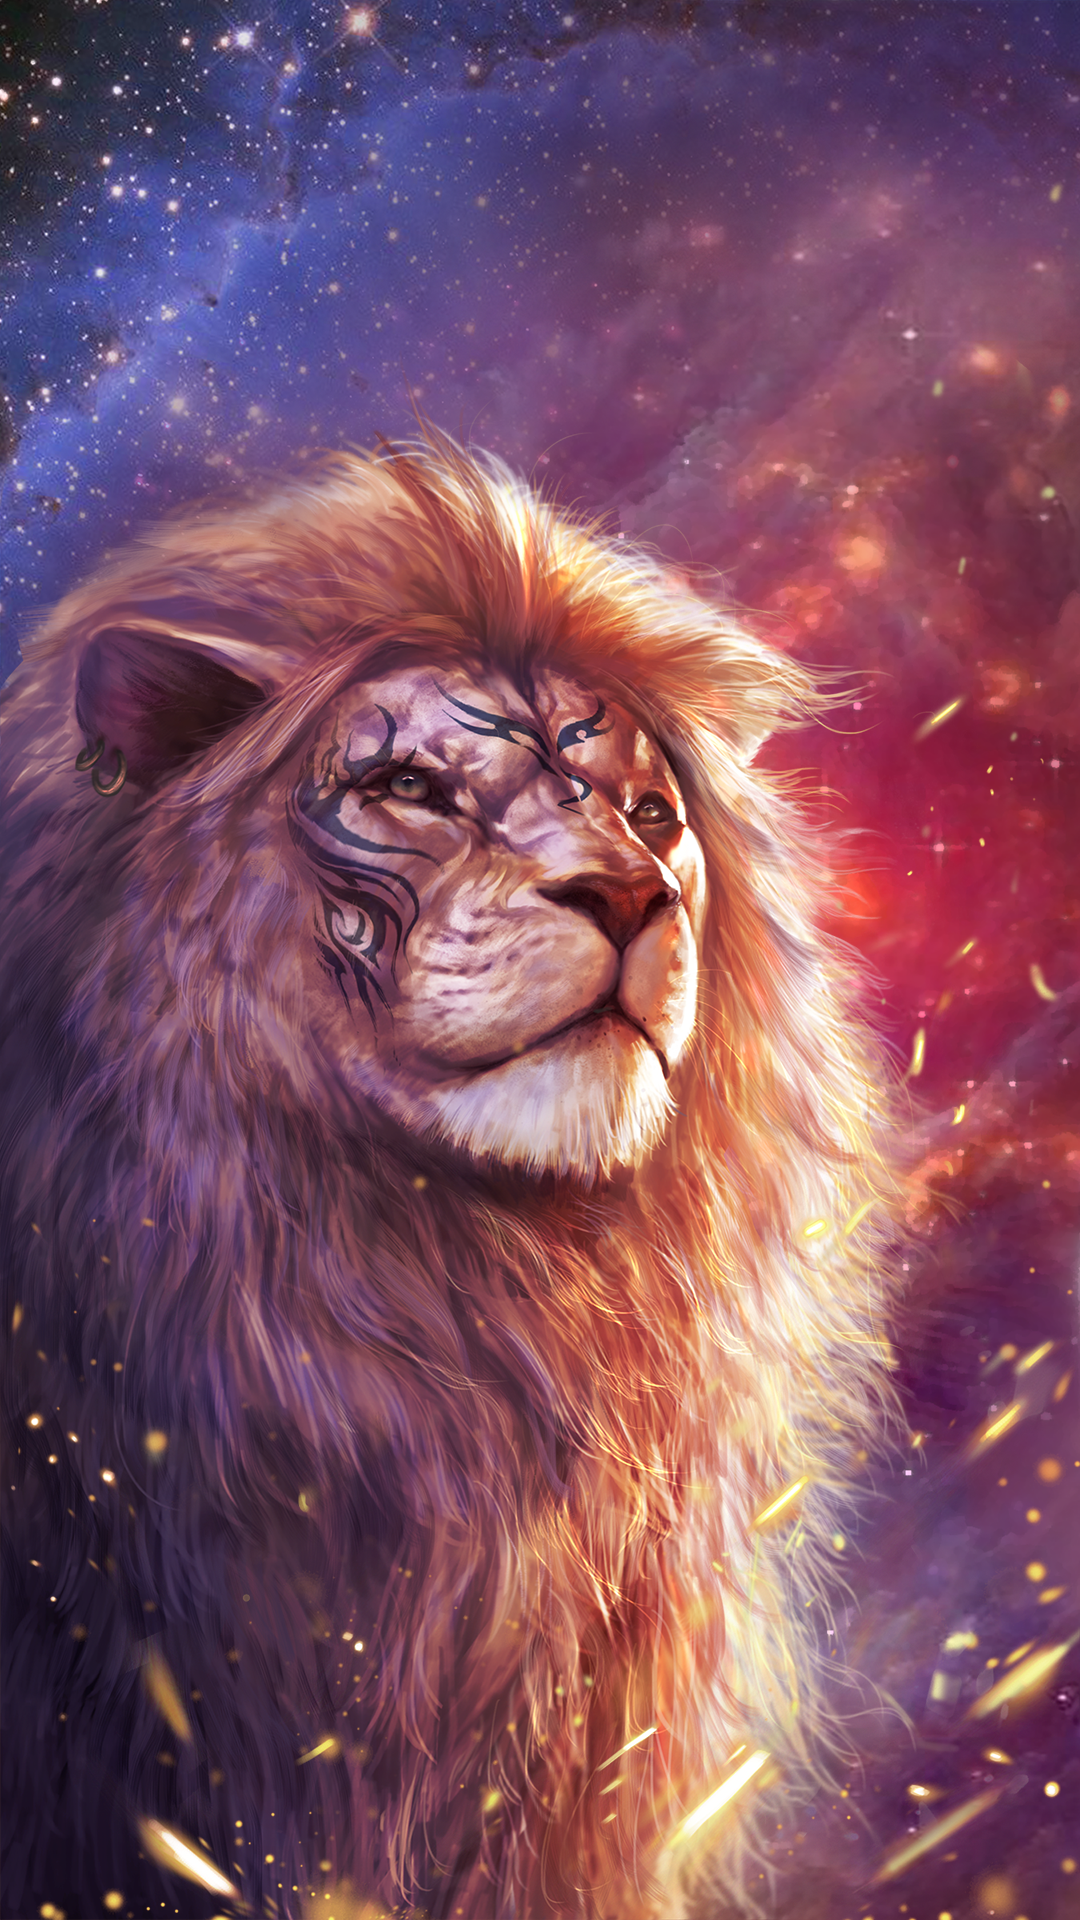 Cool lion wallpaper with totem tattoo! | Android live wallpapers from Ahatheme | Lion wallpaper ...